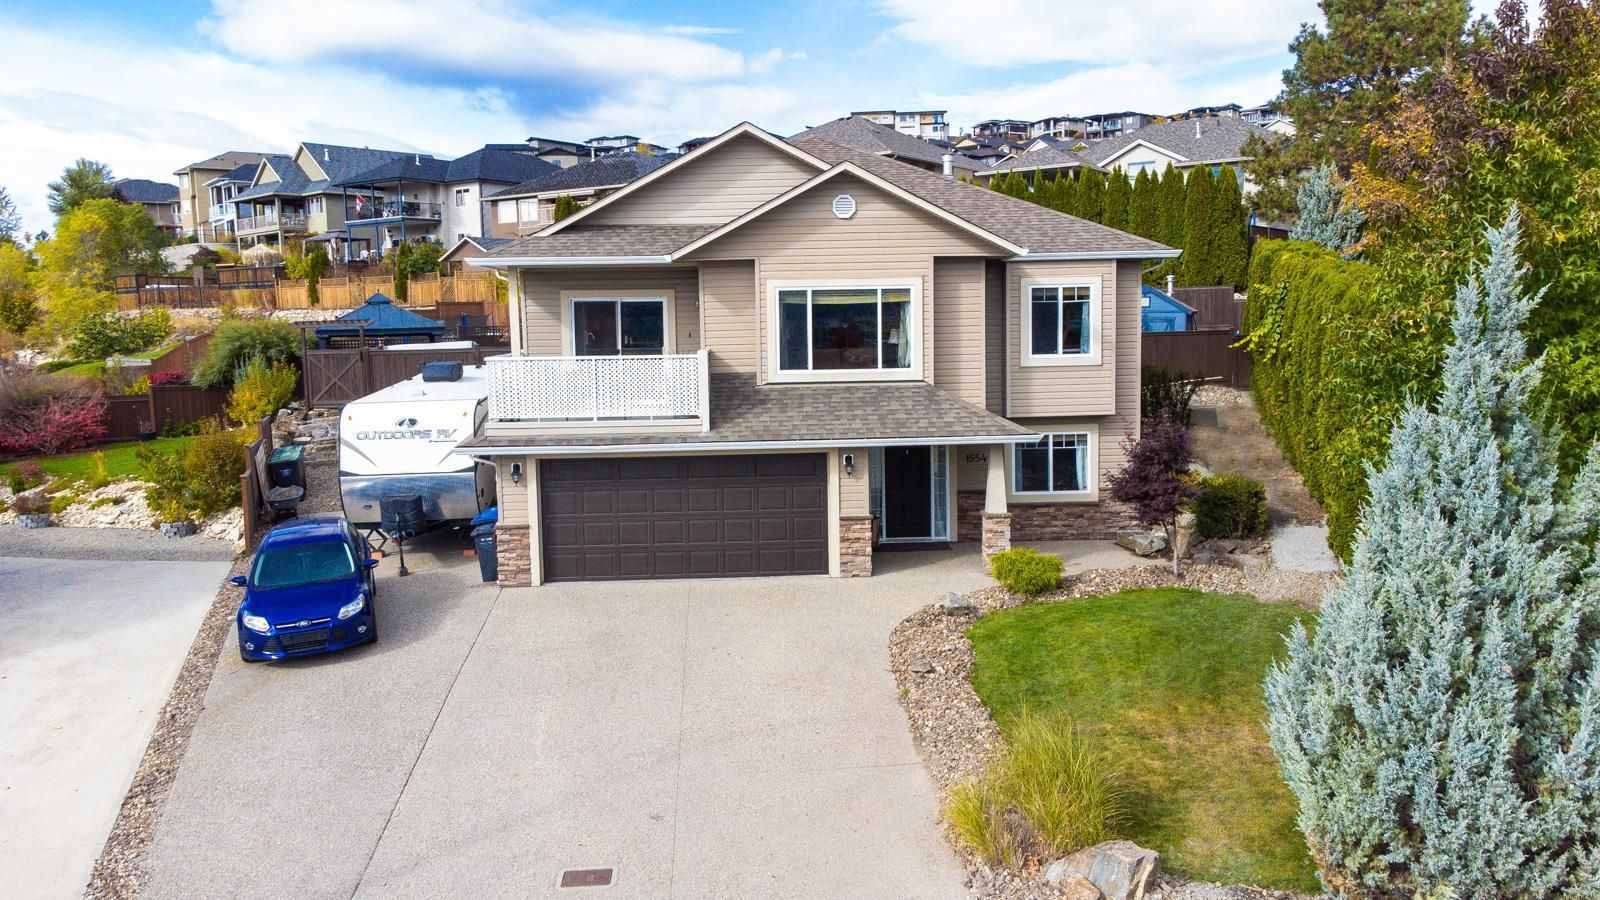 Main Photo: 1554 Large Avenue, in Kelowna: House for sale : MLS®# 10241585